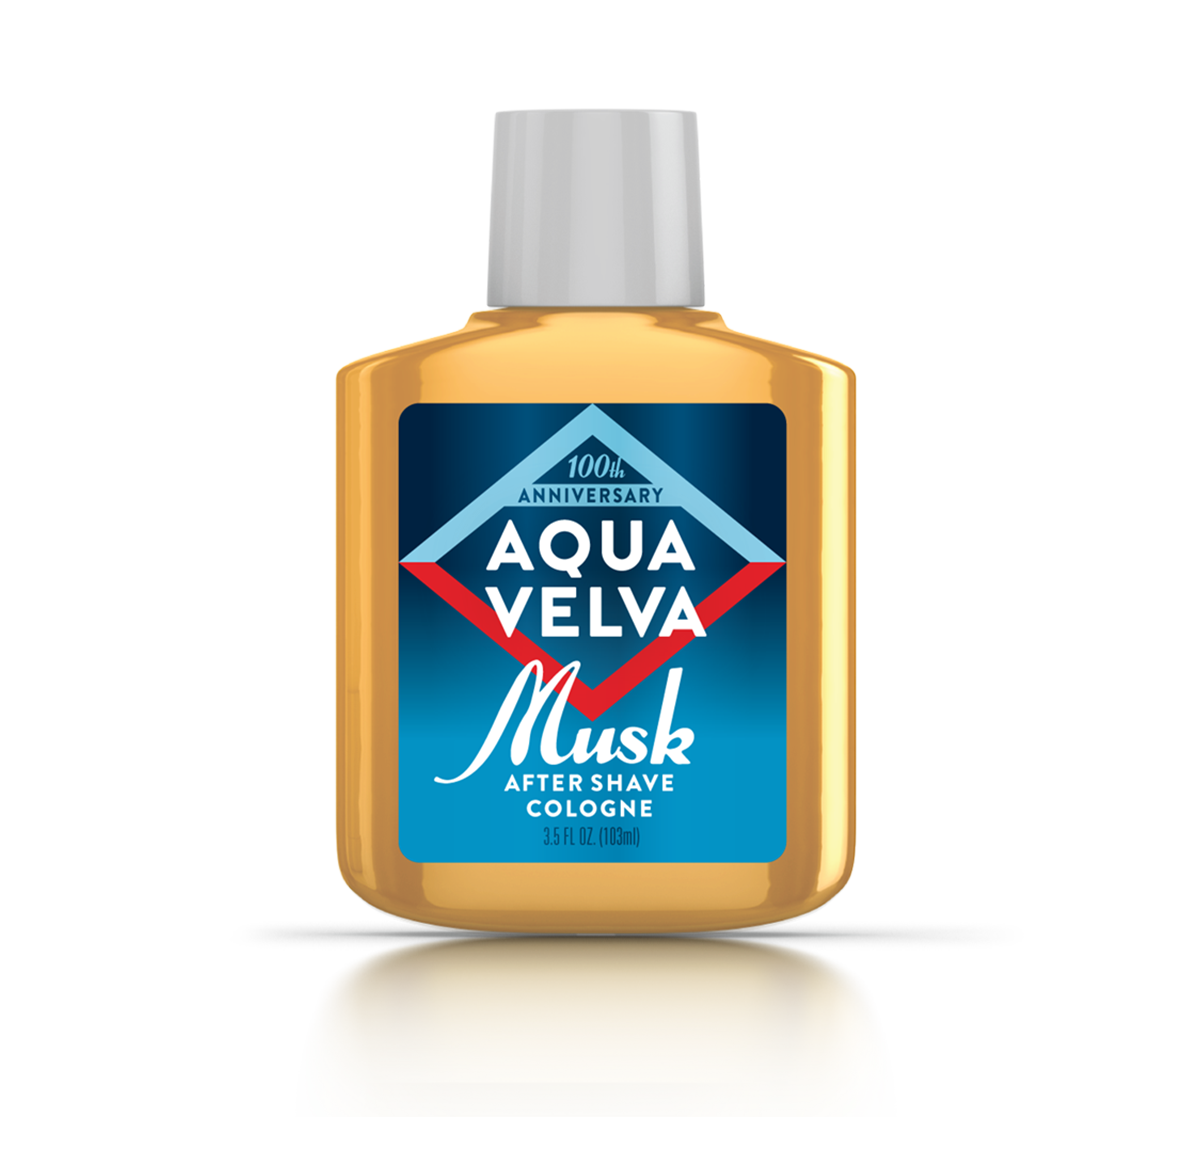 Aqua Velva - Musk - Aftershave image